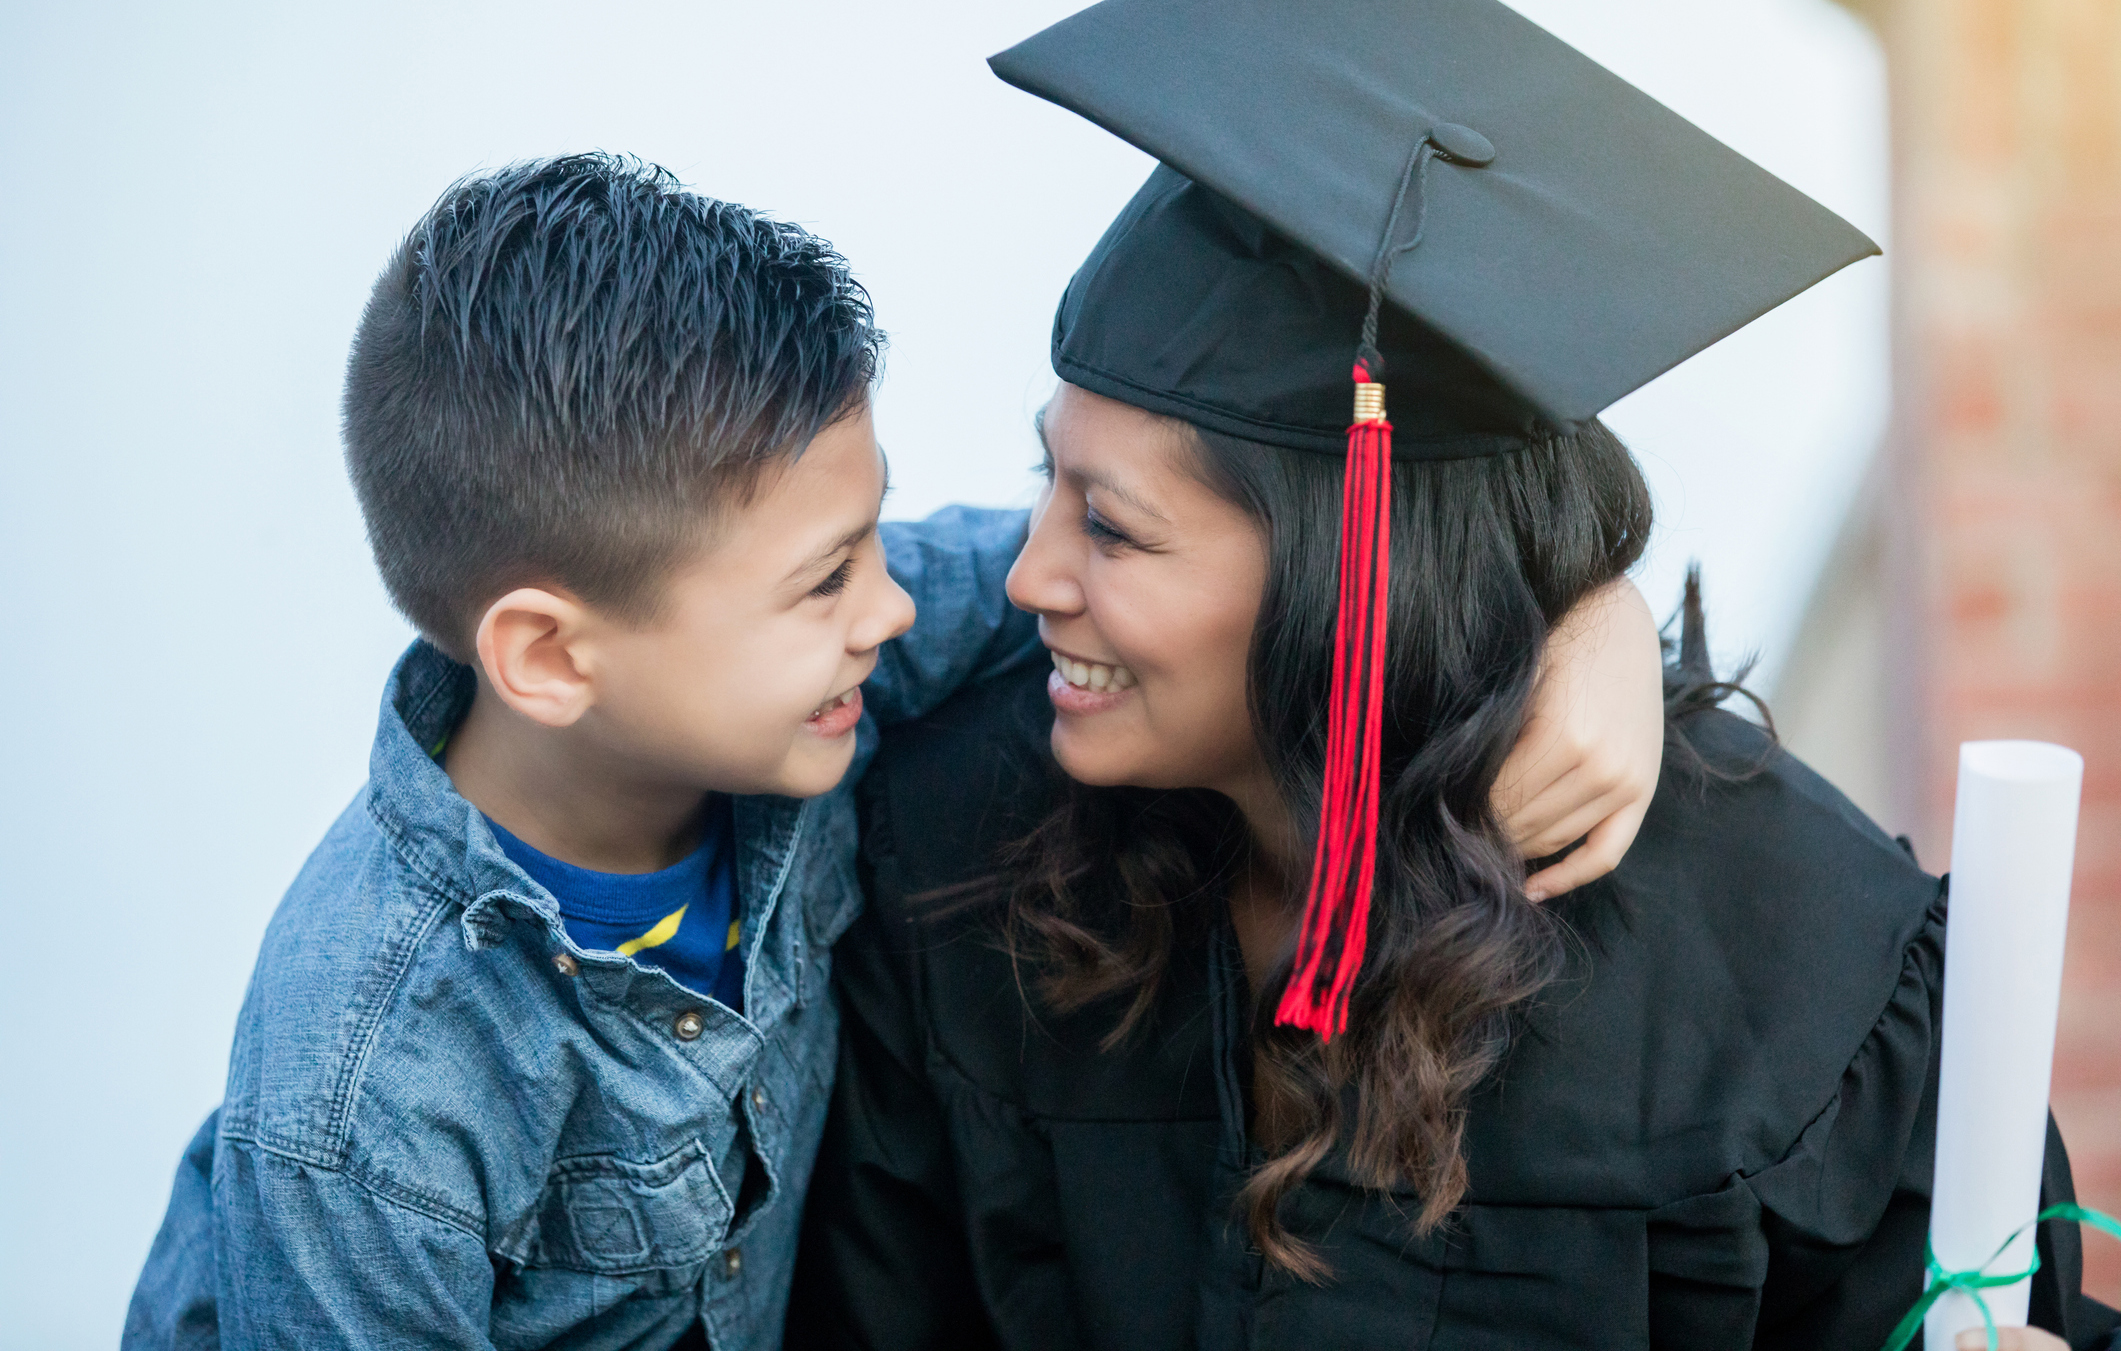 Woman wearing graduation cap and gown sitting with a child